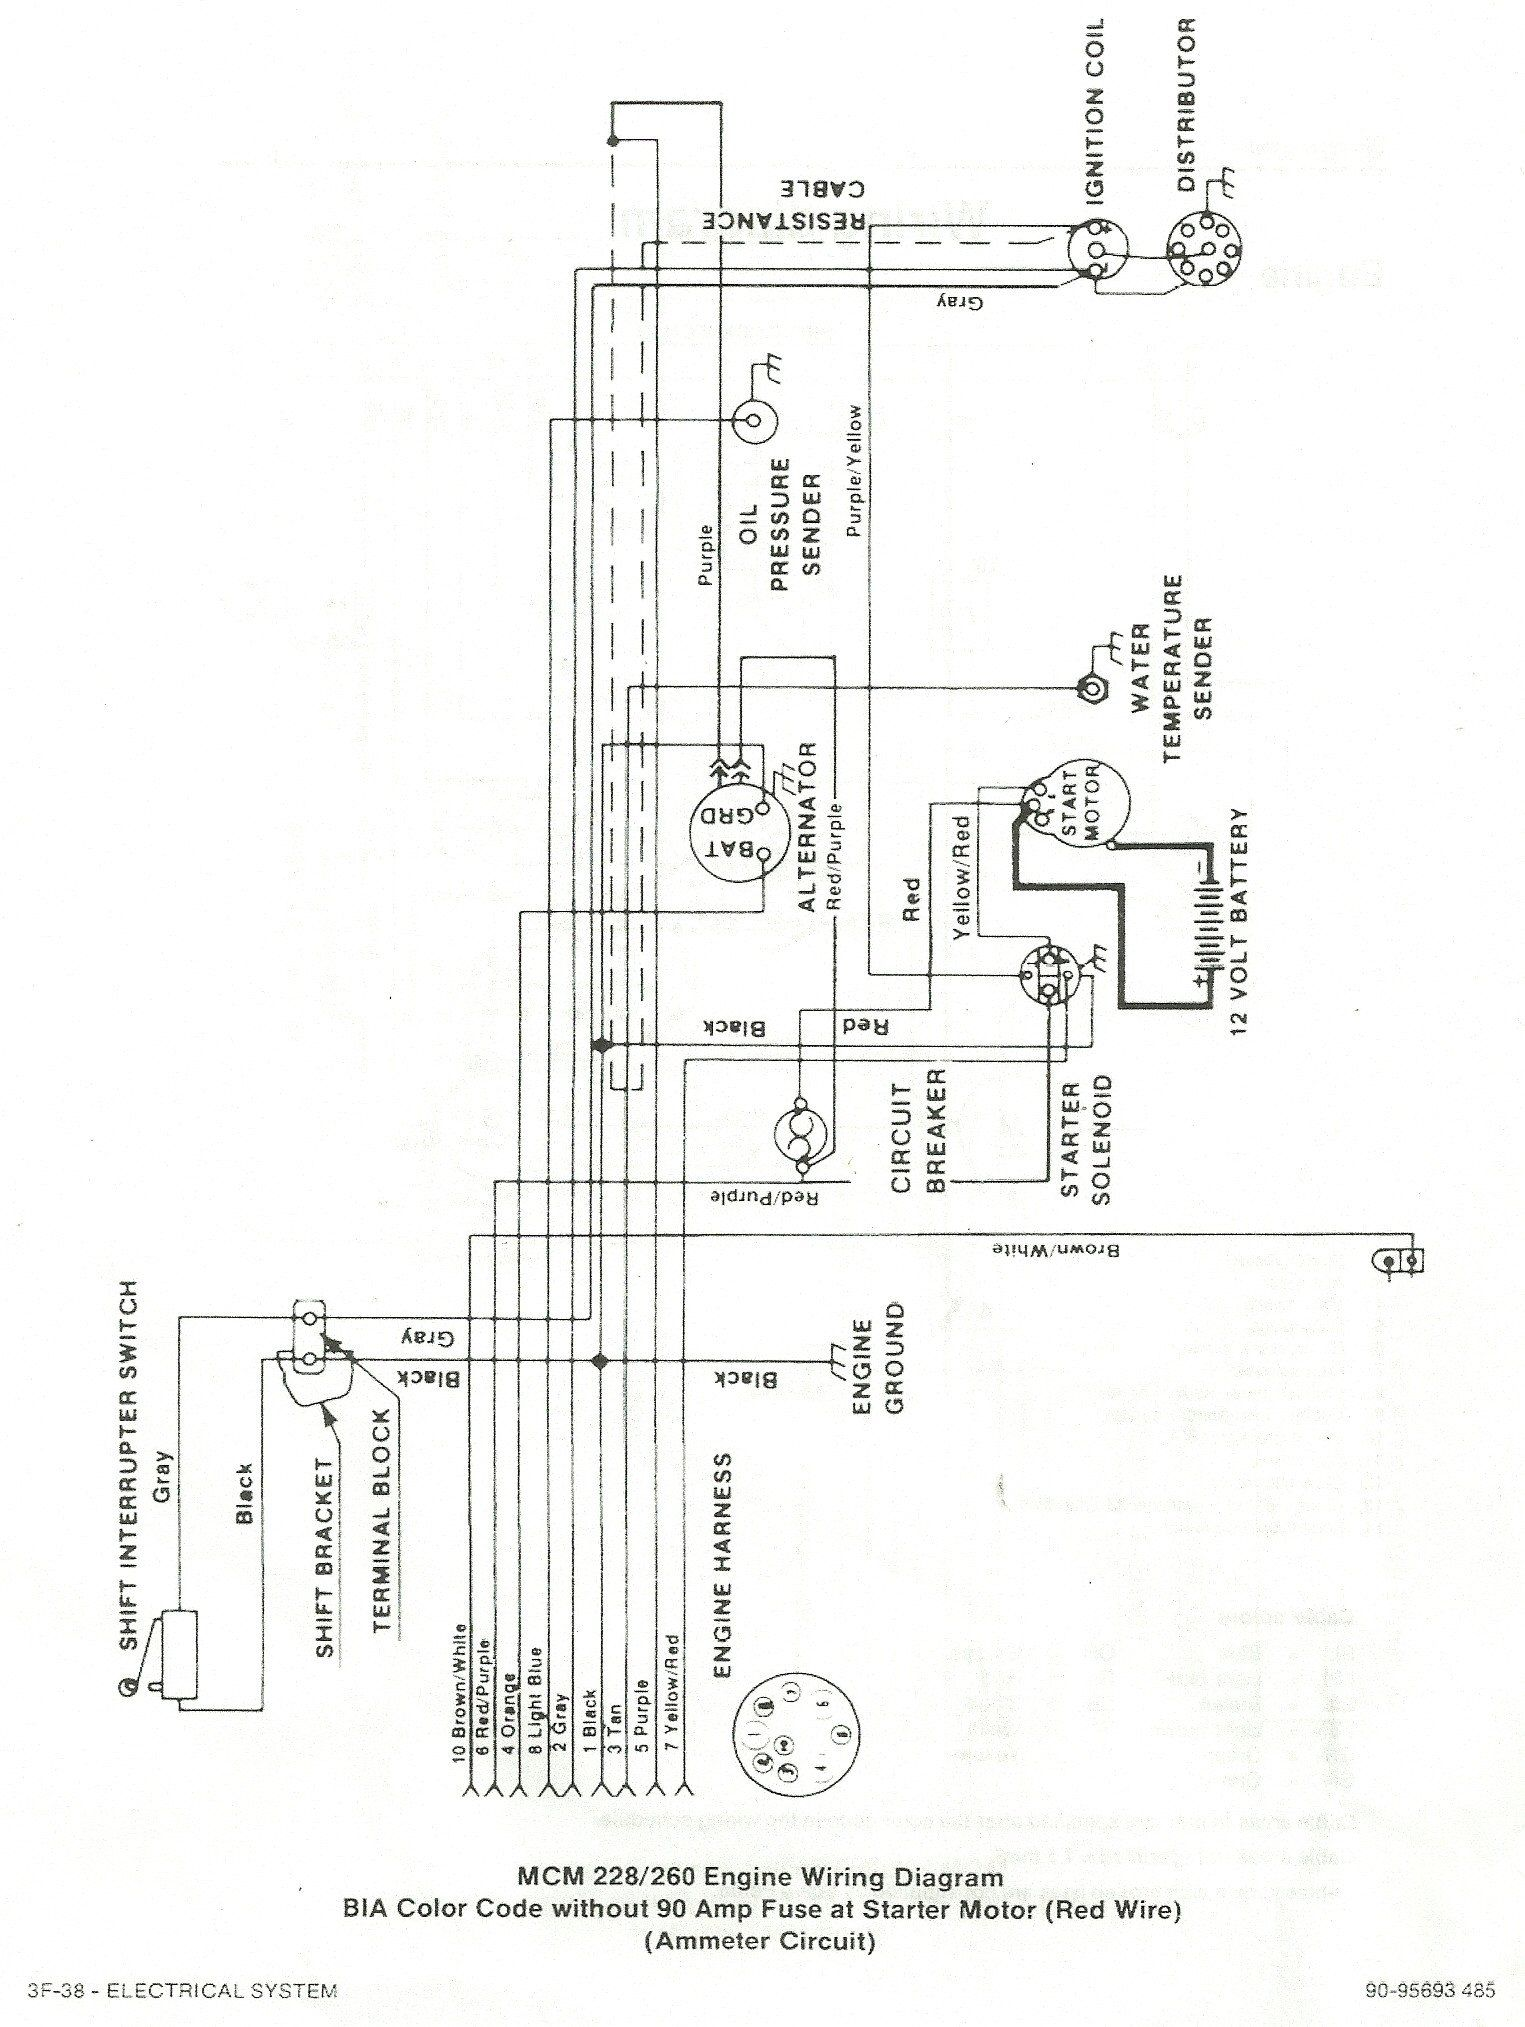 Mercruiser Sterndrive Wiring Diagram - Wiring Diagram Expert on mercruiser ignition coil, mercruiser coil wire, mercruiser boat wiring diagrams, mercruiser distributor diagram, mercruiser alpha one outdrive parts diagram, 350 chevy engine wiring diagram, mercruiser 5.7 diagram, mercruiser ignition diagram, mercruiser starter diagram, mopar neutral safety switch wiring diagram, mercruiser coil sae j1171, mercury ignition switch wiring diagram, mercruiser fuel pump diagram, mercruiser 5.0 mpi wiring,